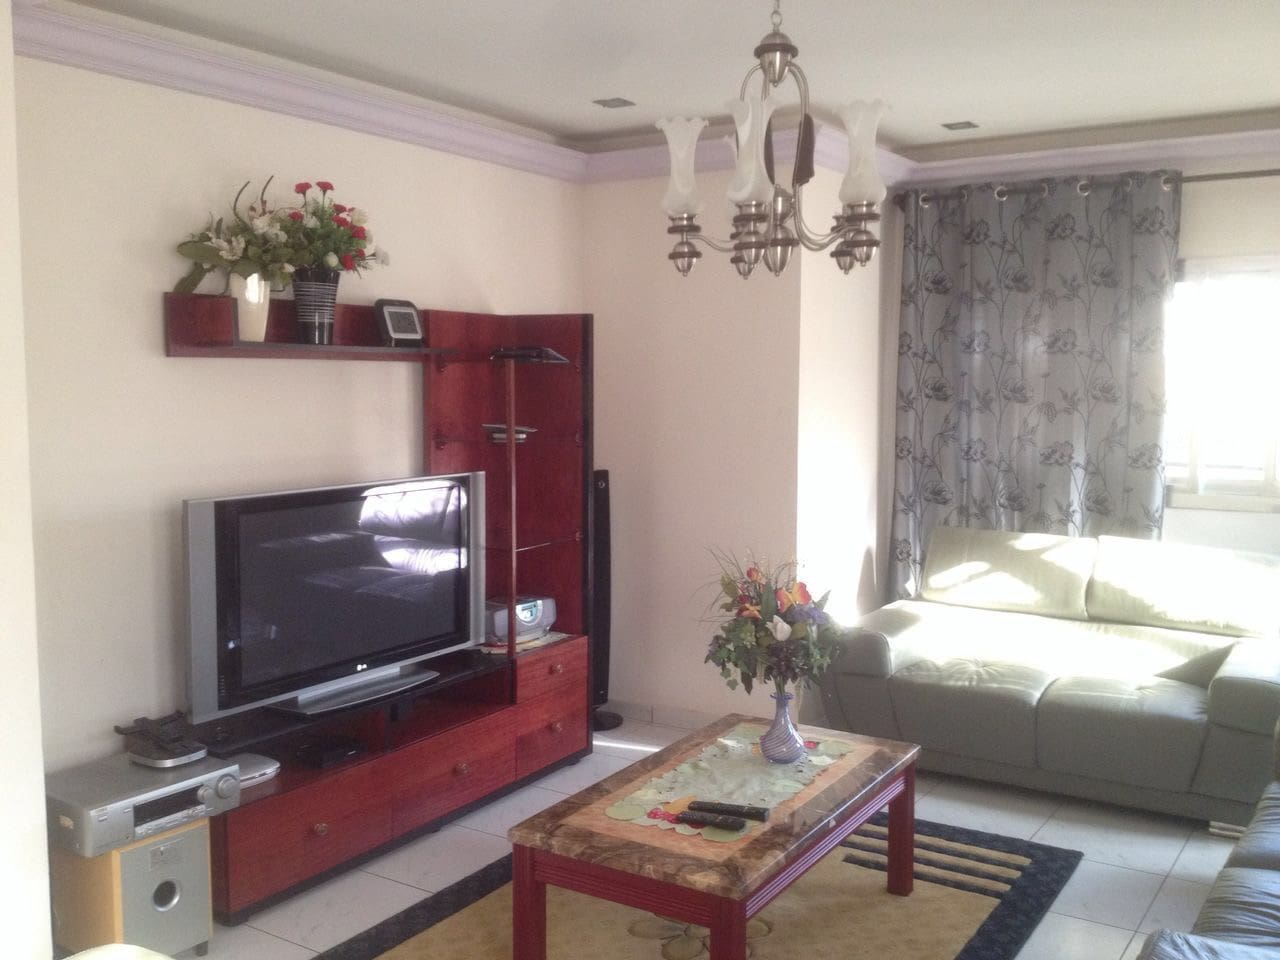 Appartement Tout Confort Meubl Bastos Yaound Serviced Flats  # Meuble Tv Yaounde